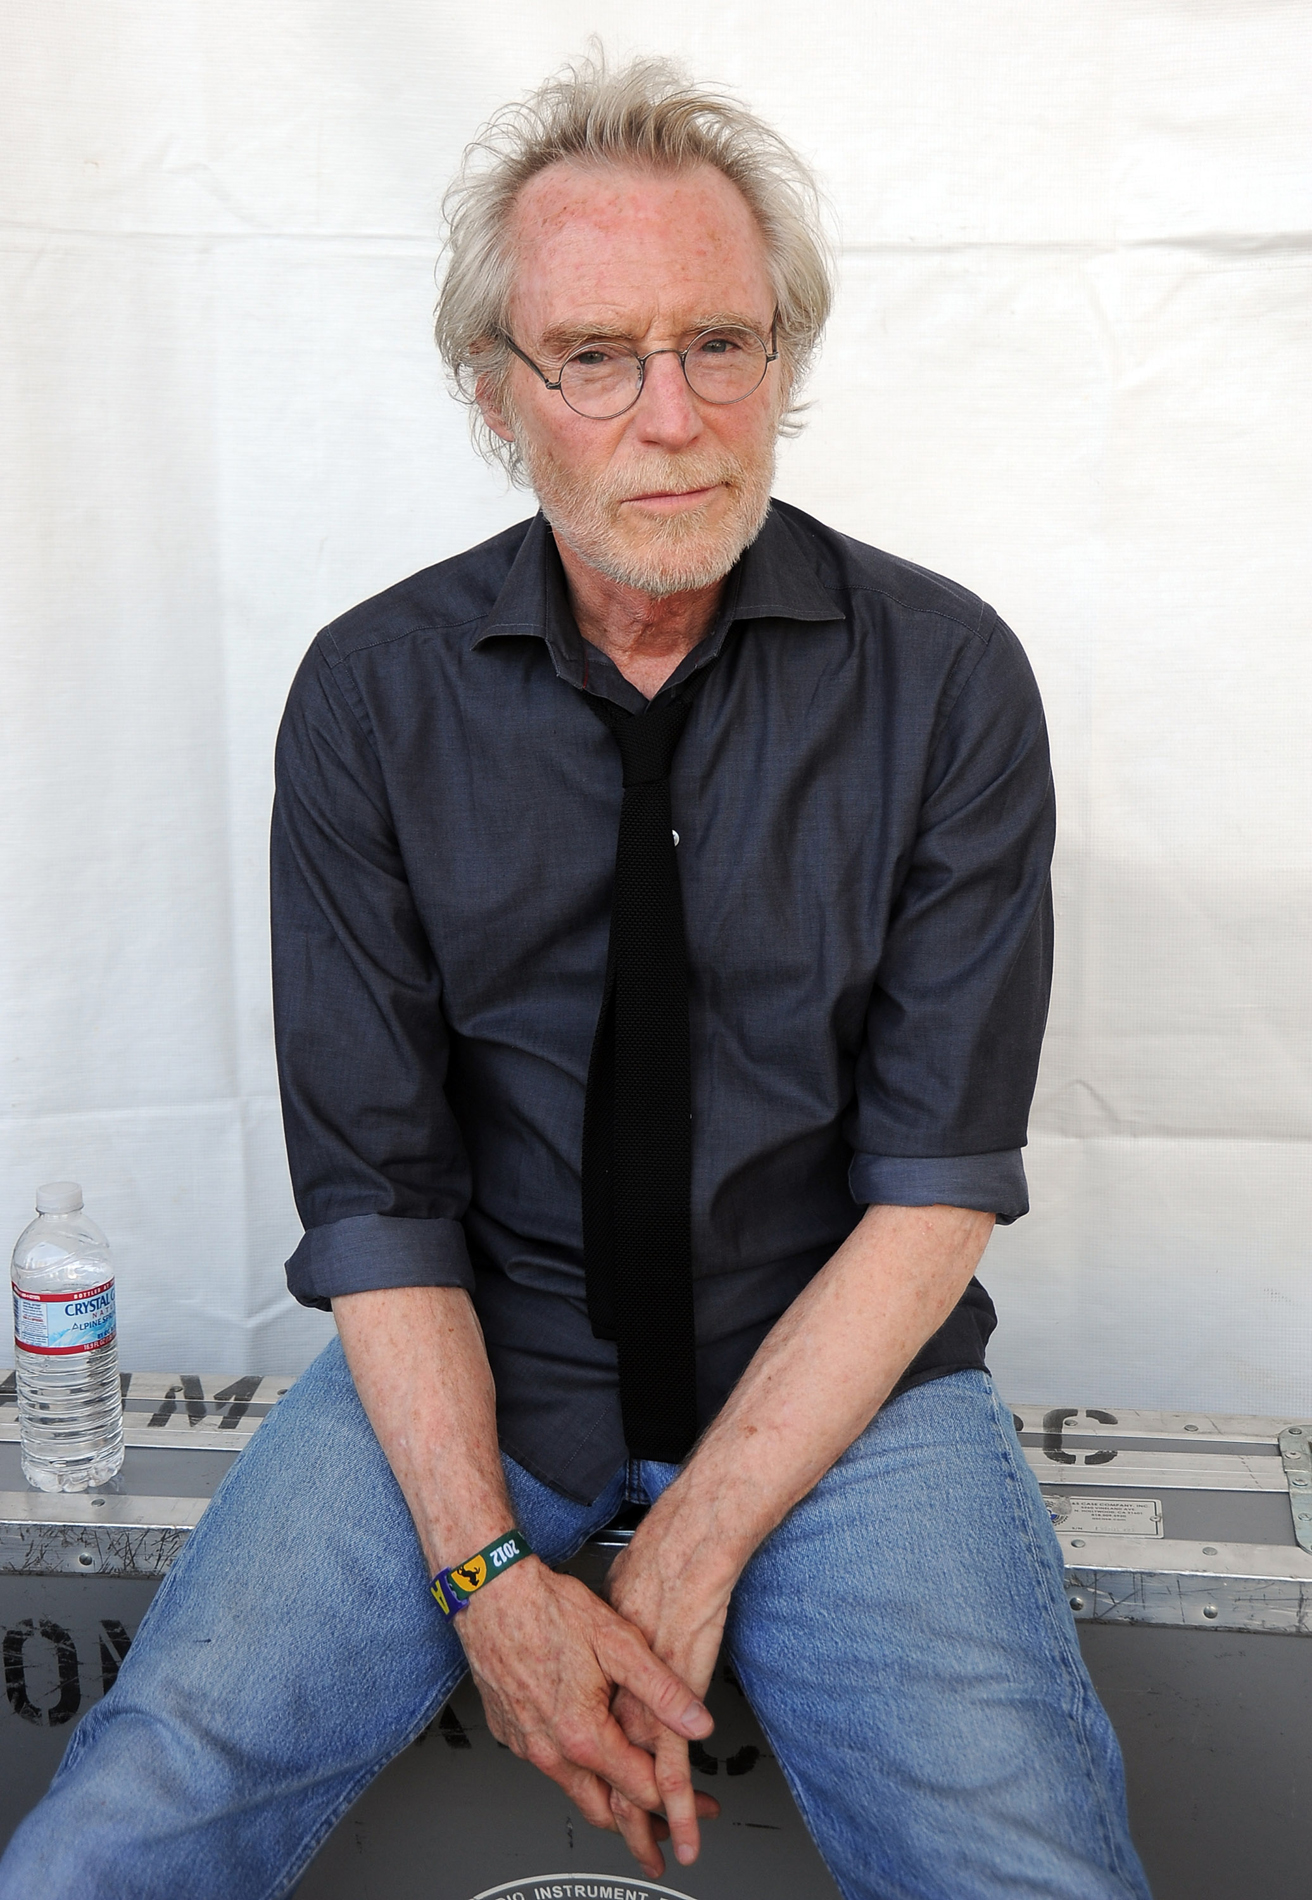 Jusee sill jd souther